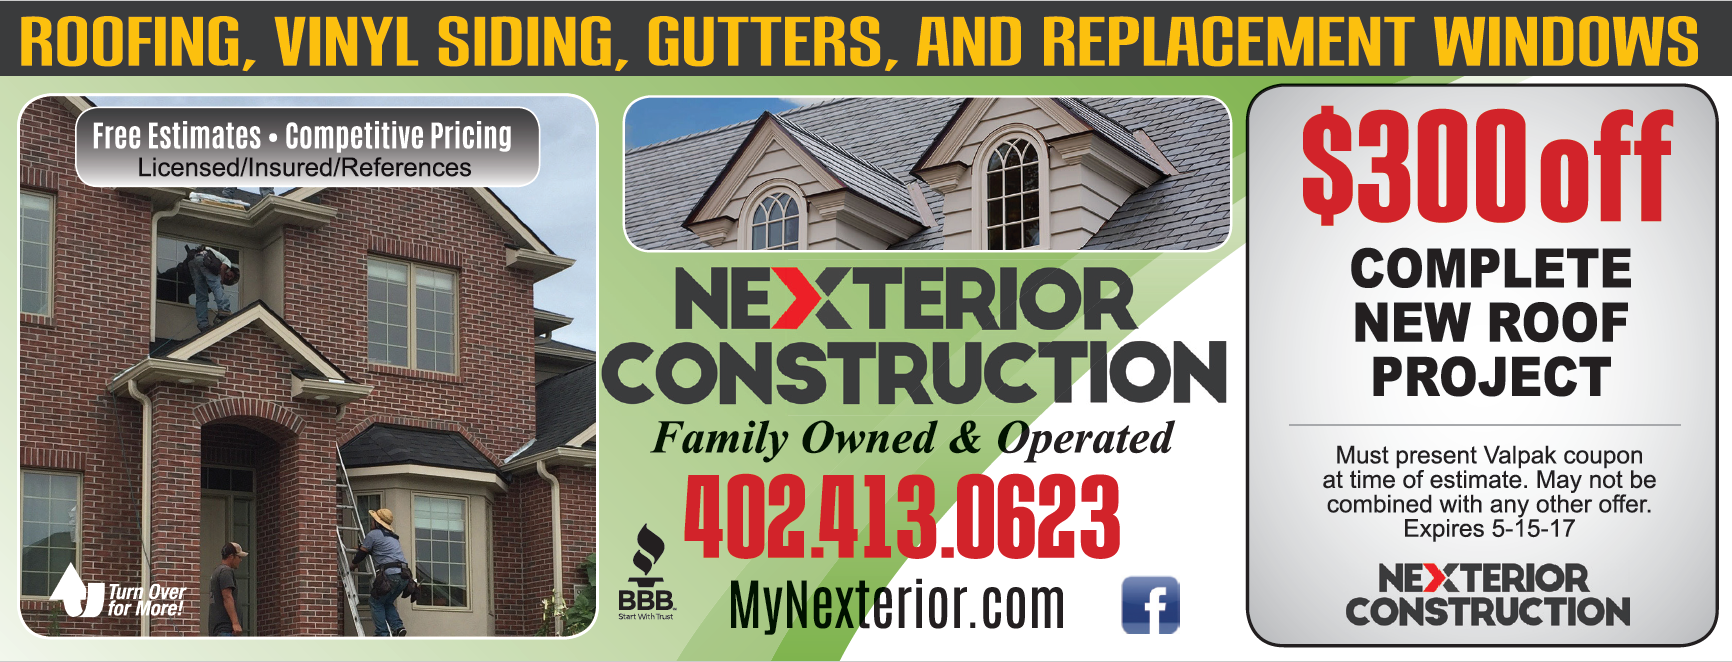 Nexterior Construction Valpak Back